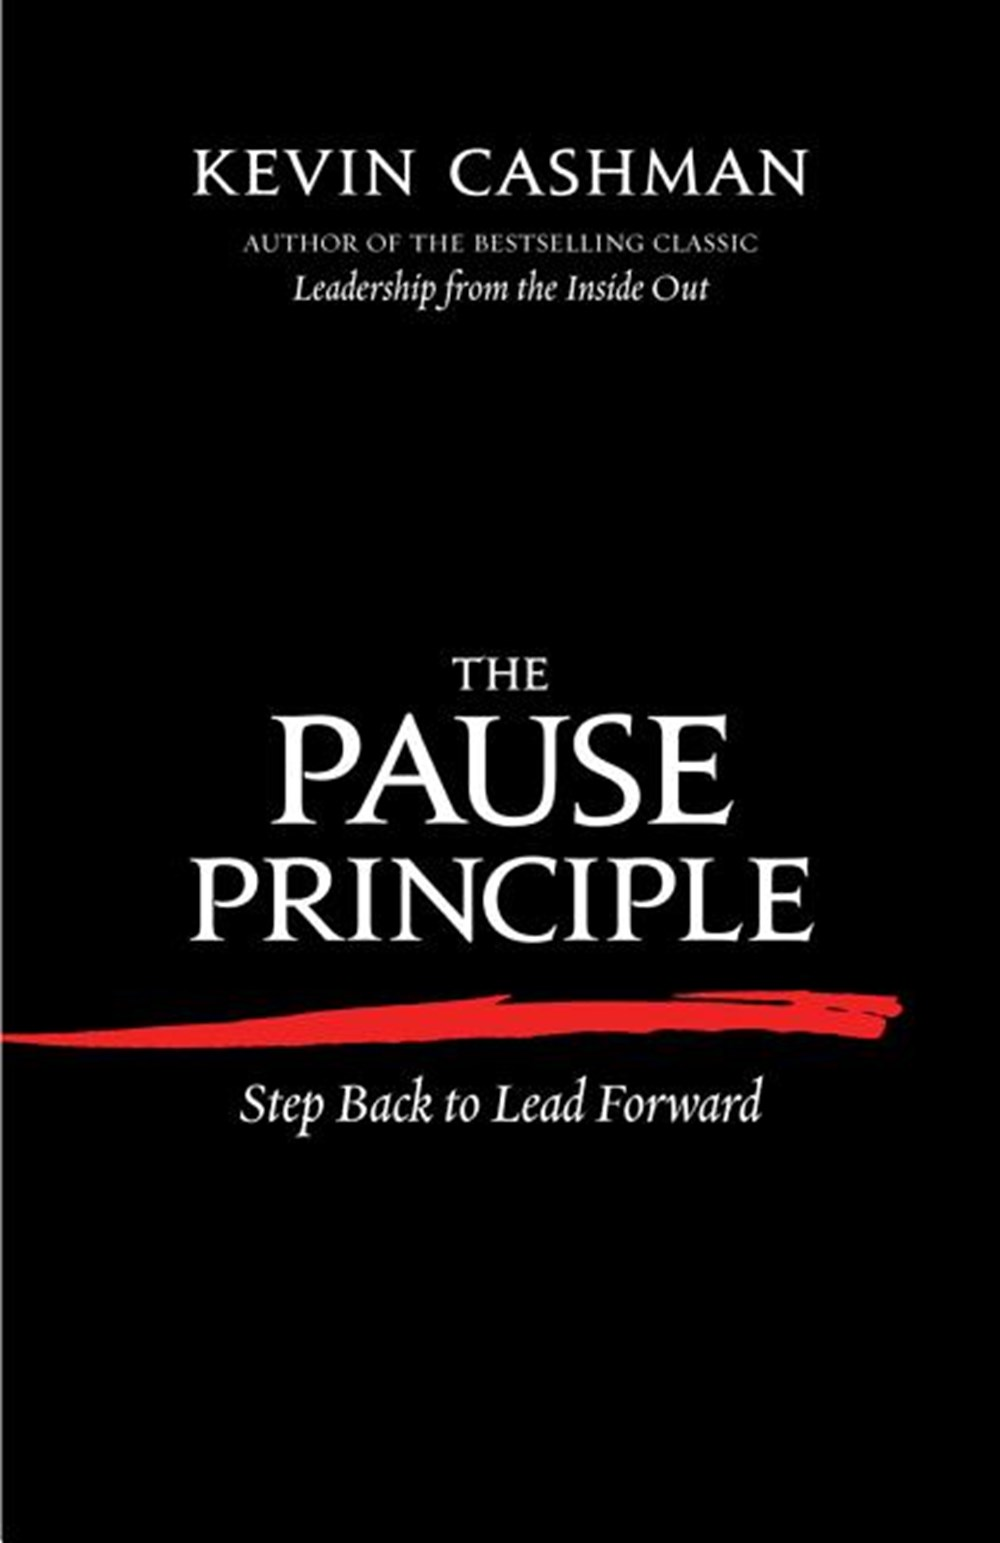 Pause Principle Step Back to Lead Forward